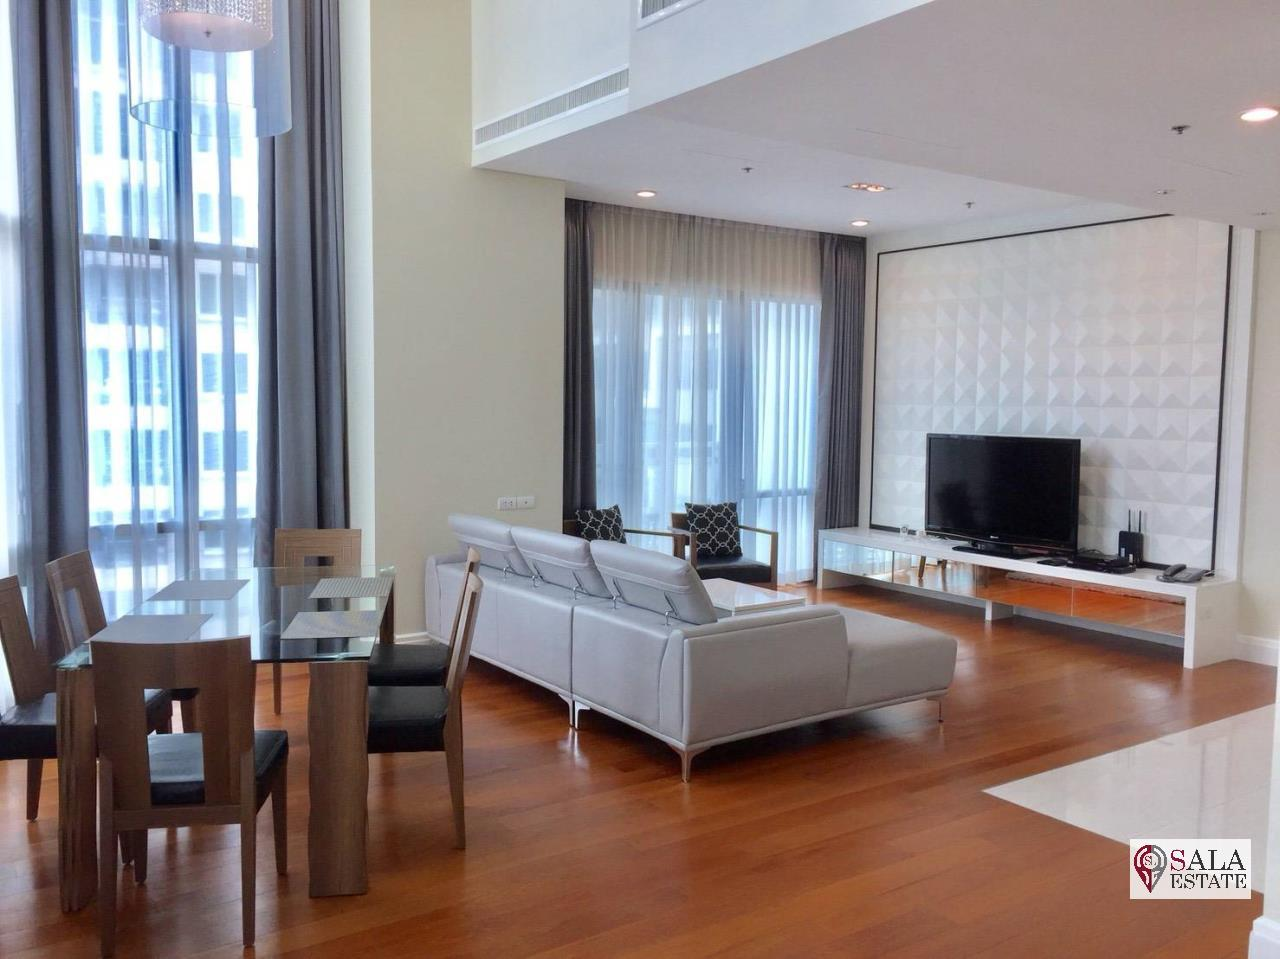 SALA ESTATE Agency's (FOR RENT) BRIGHT SUKHUMVIT 24 - BTS PHROM PHONG, DUPLEX TYPE,3 BEDROOMS 3 BATHROOMS, FULLY FURNISHED,CITY VIEW,HIGH FLOOR 6